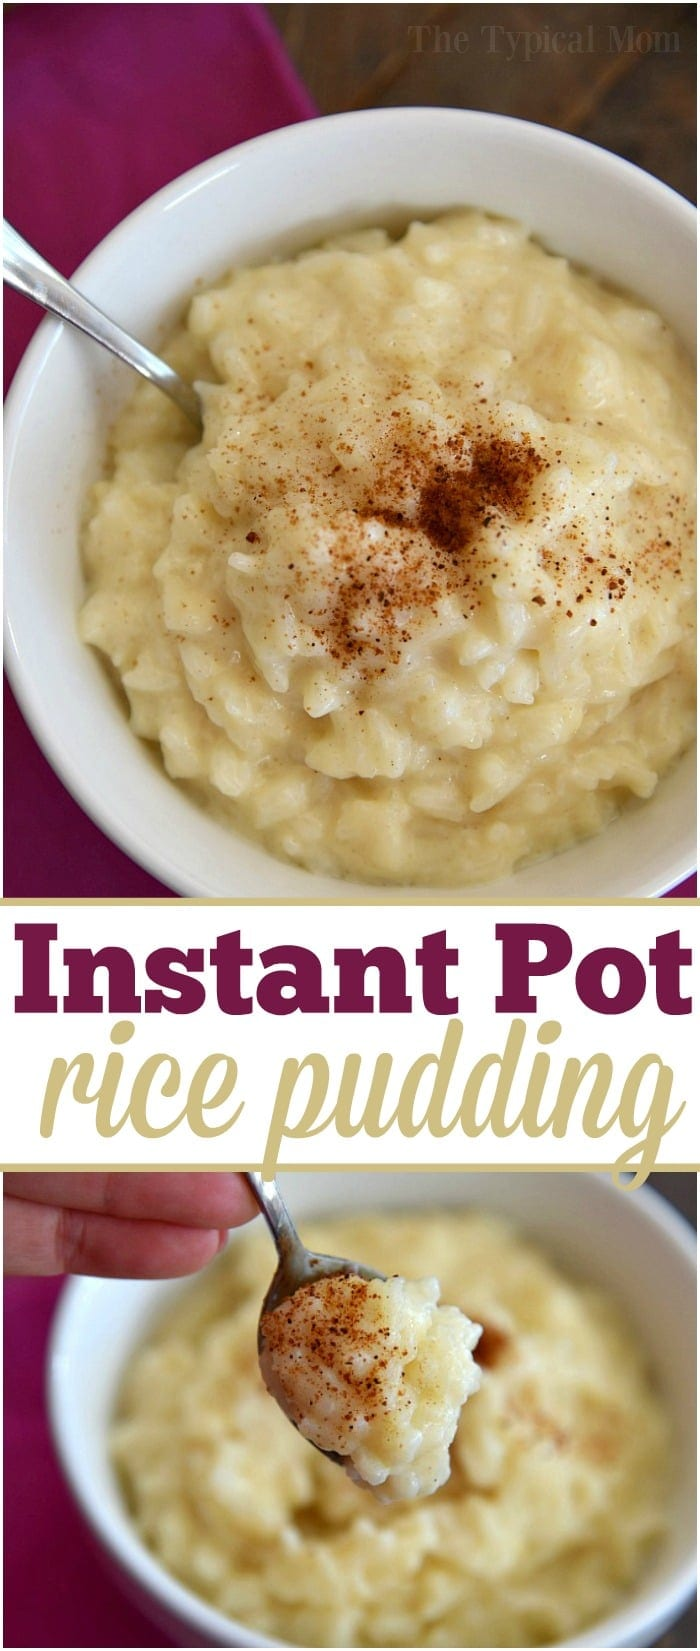 The Easiest Instant Pot Rice Pudding Recipe + Video